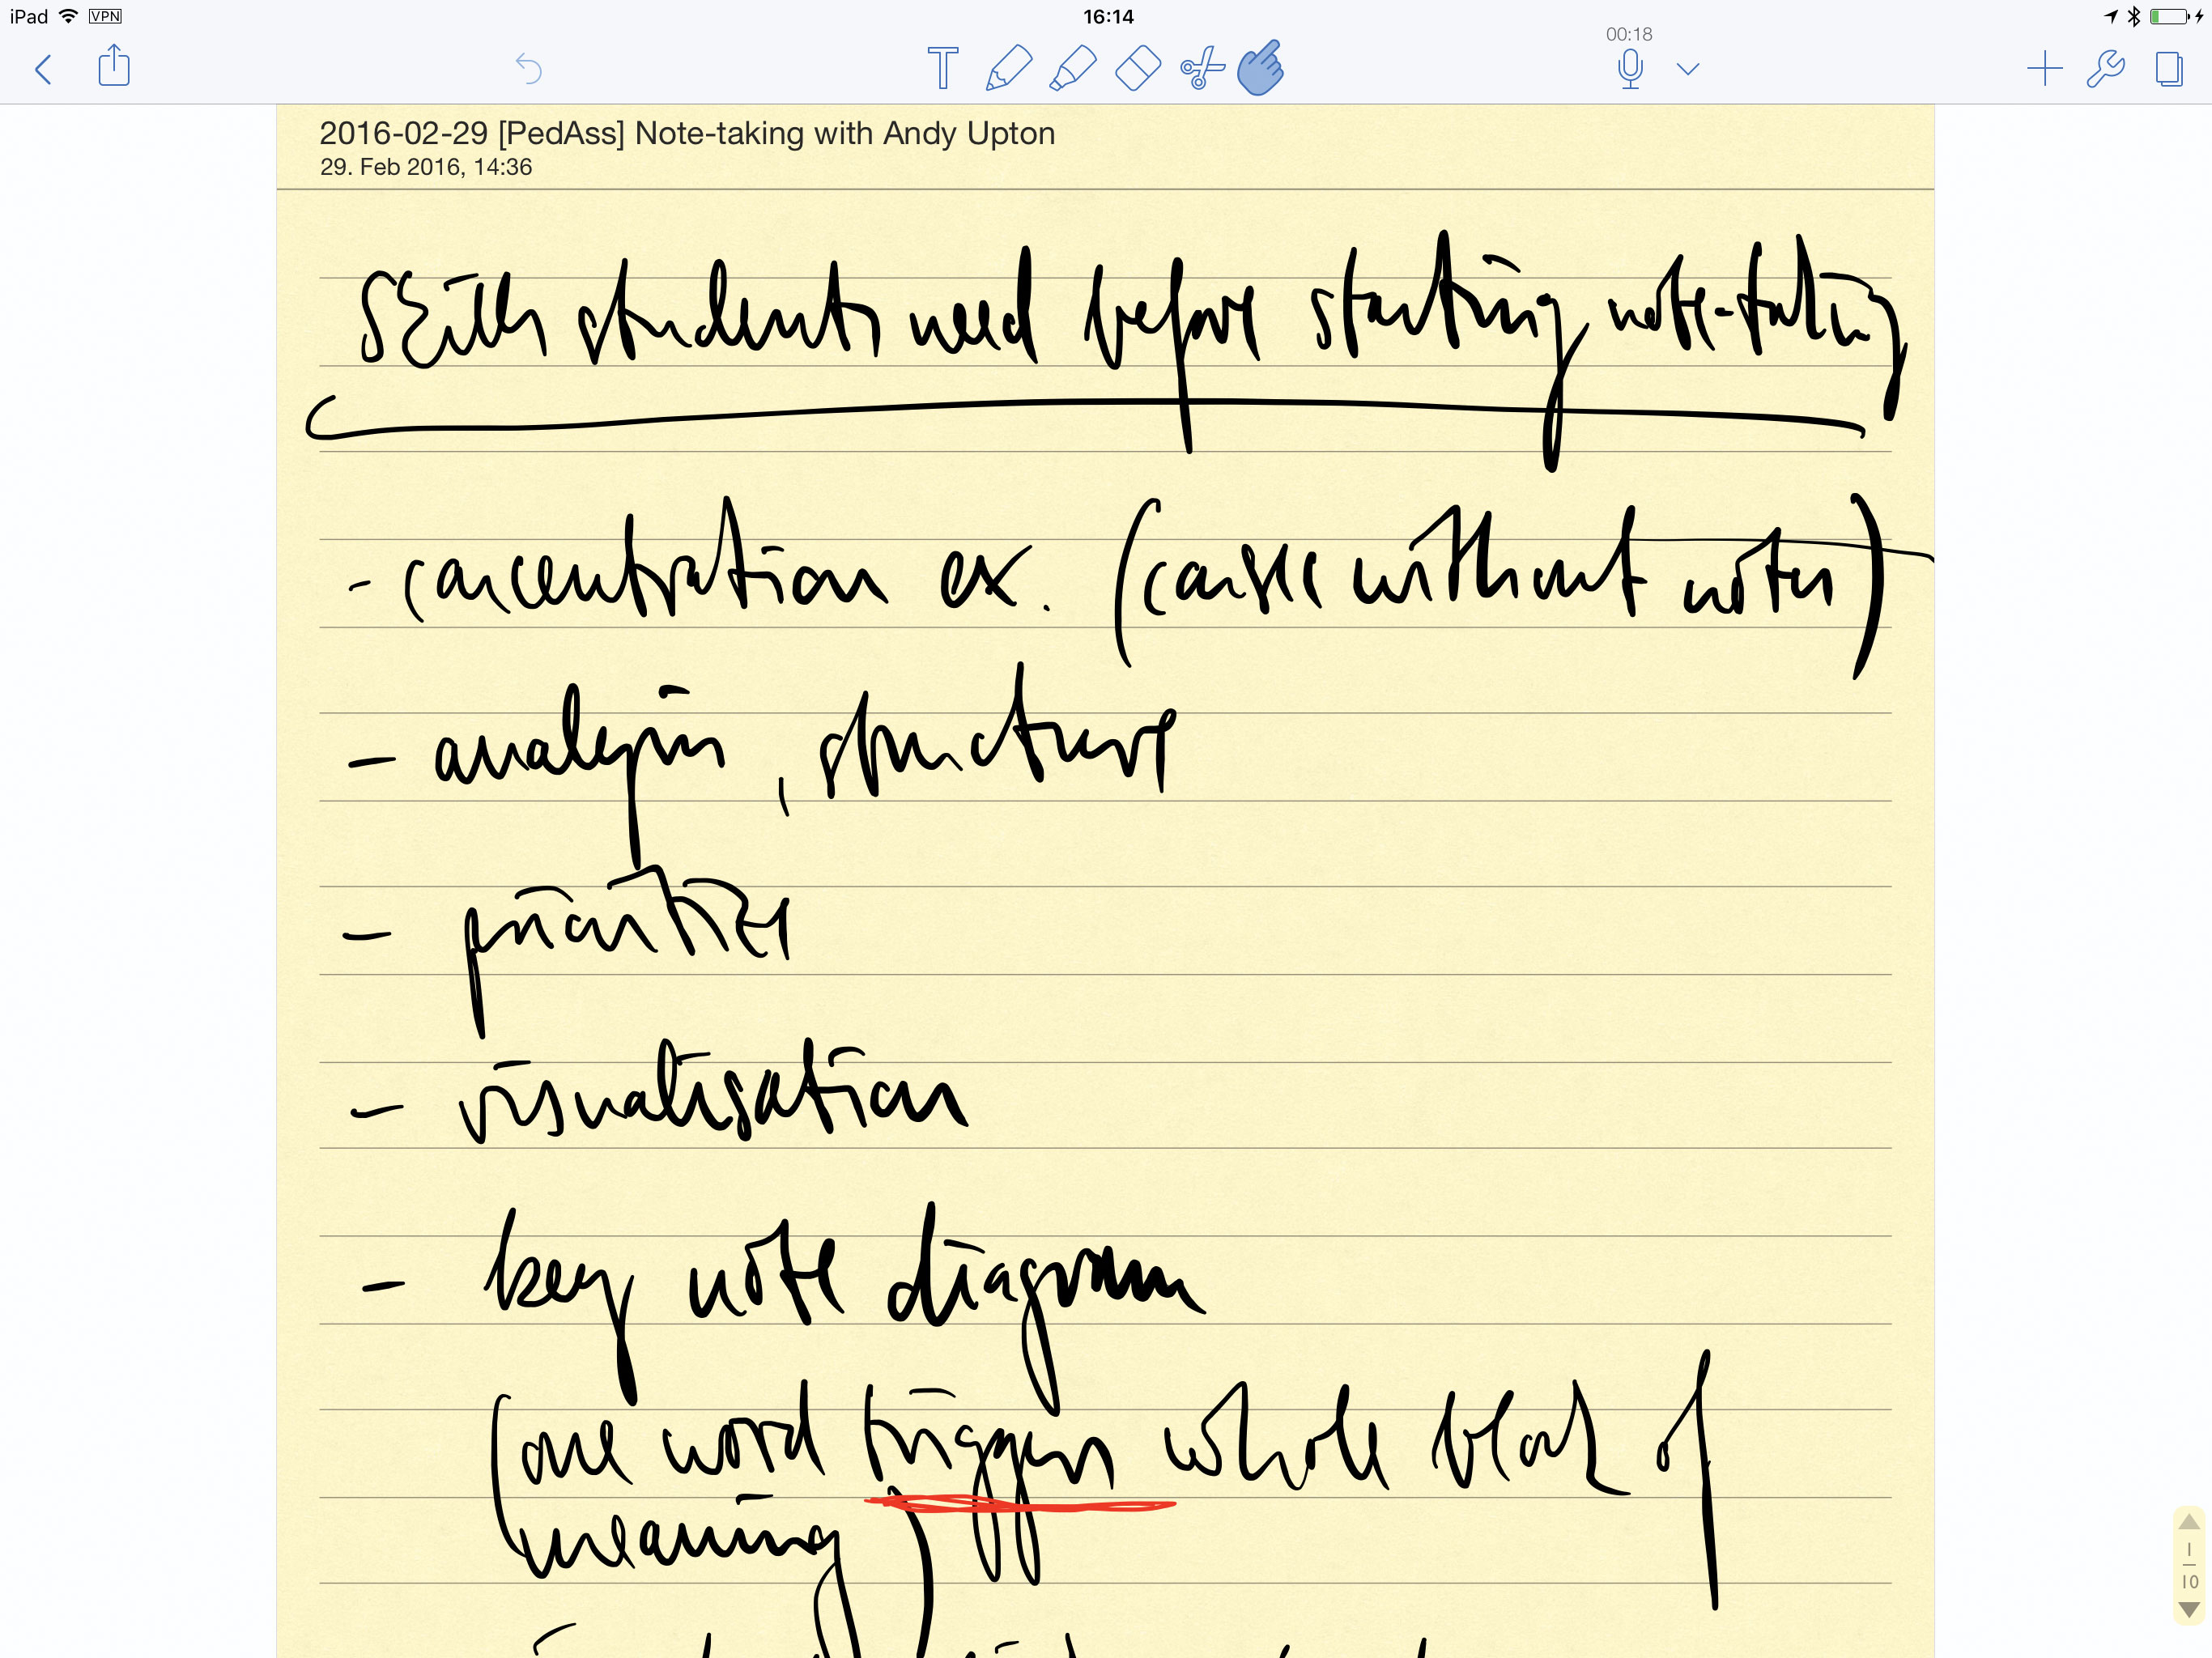 Figure 3: A screenshot of handwritten notes in the Notability app